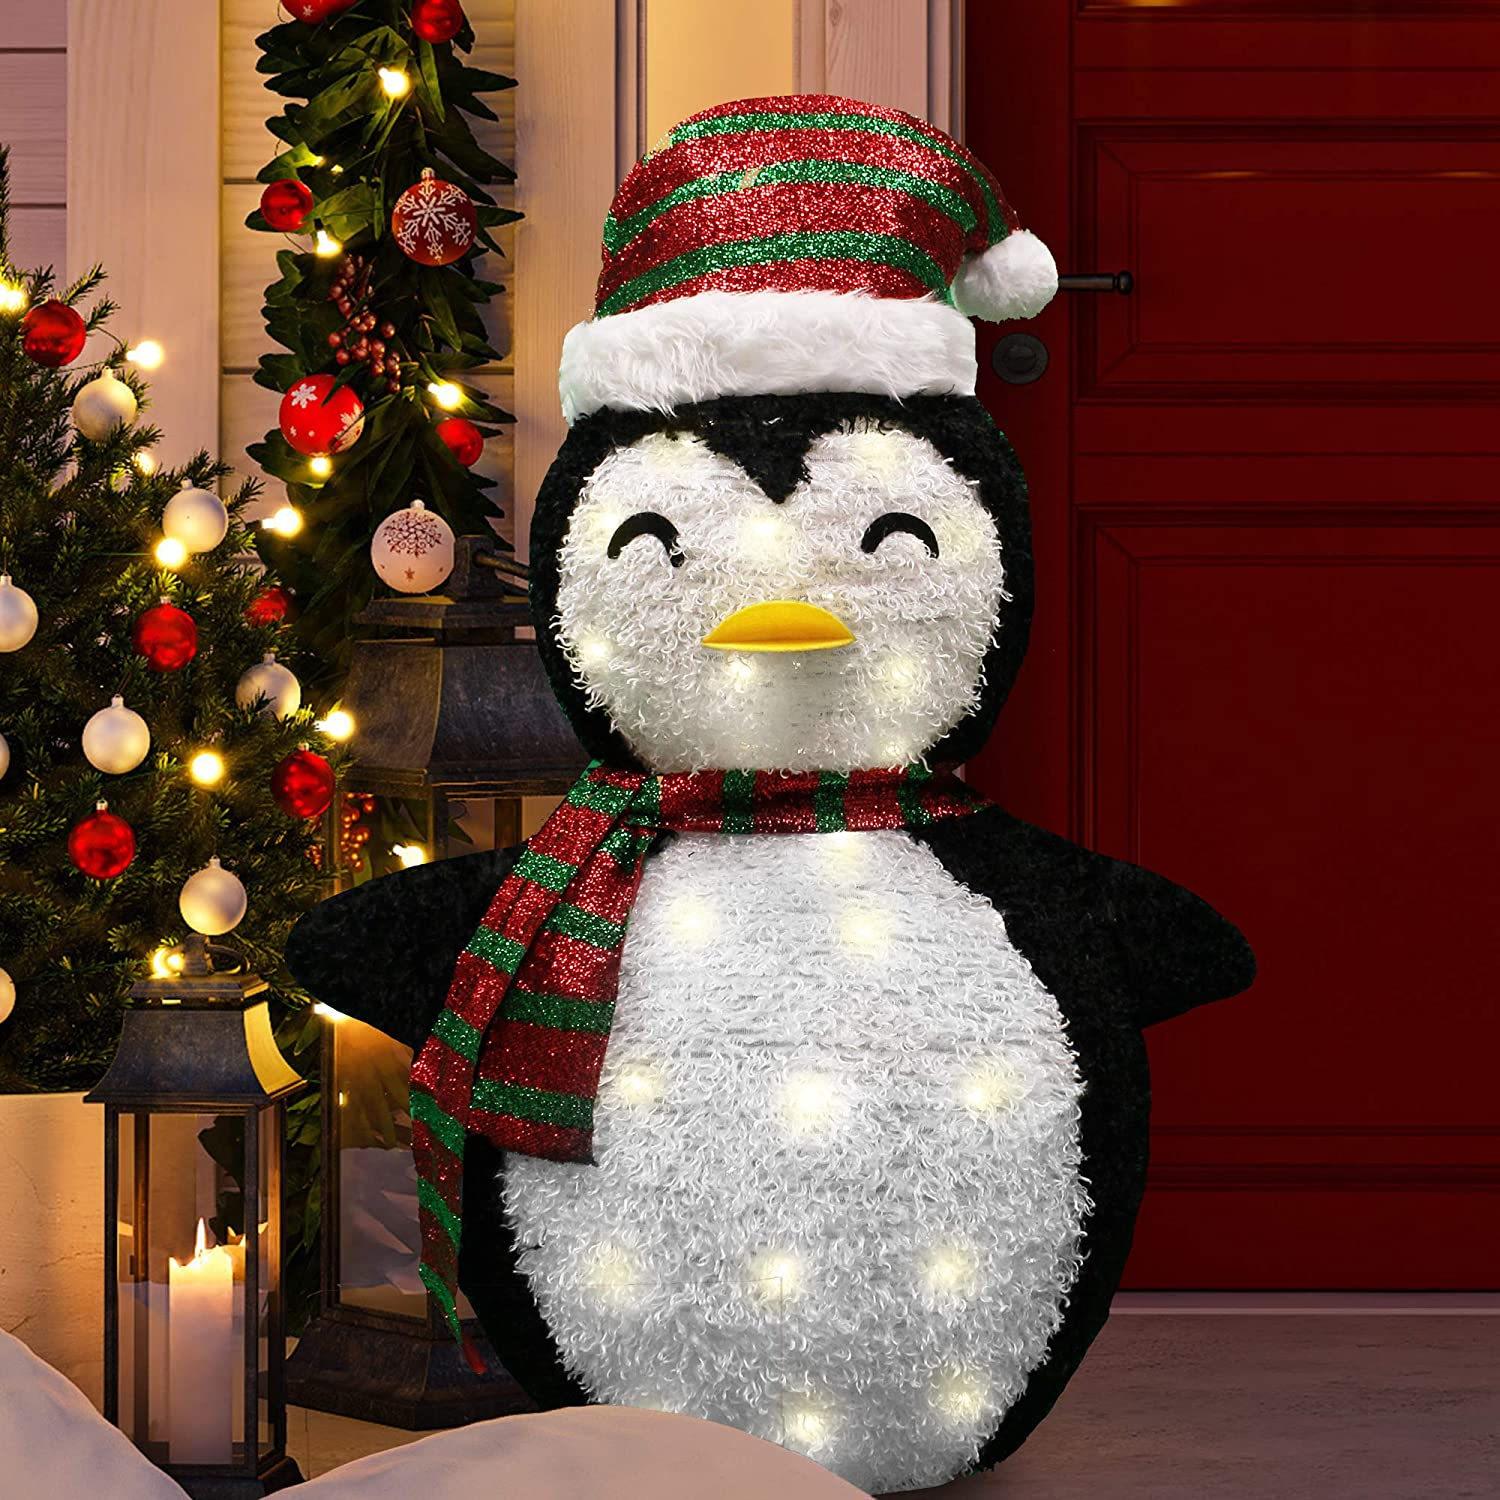 Joiedomi 3ft Tinsel Collapsible Penguin LED Yard Light for Christmas Outdoor Yard Garden Decorations, Christmas Event Decoration, Christmas Eve Night Decor